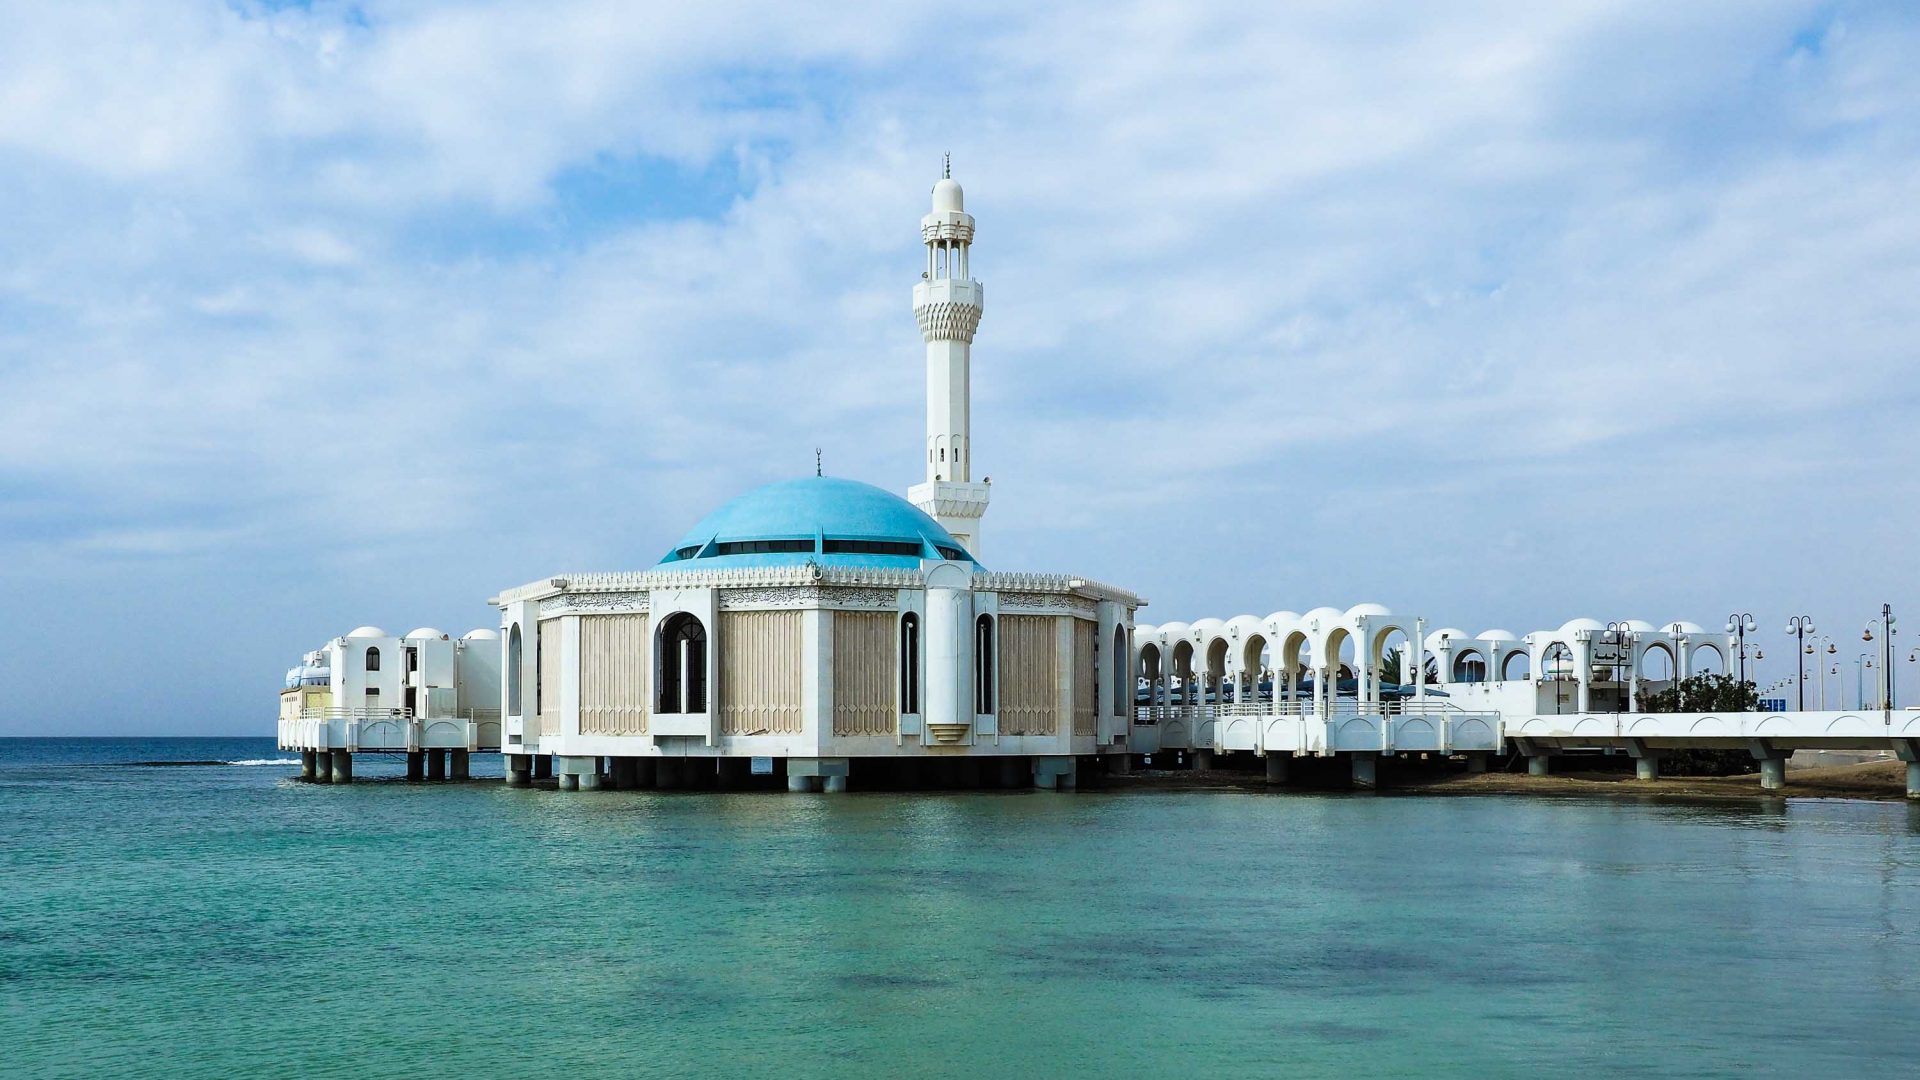 Jeddah's floating mosque, also known as Masjid Al-Rahma or Fatima Al-Zahra Mosque.